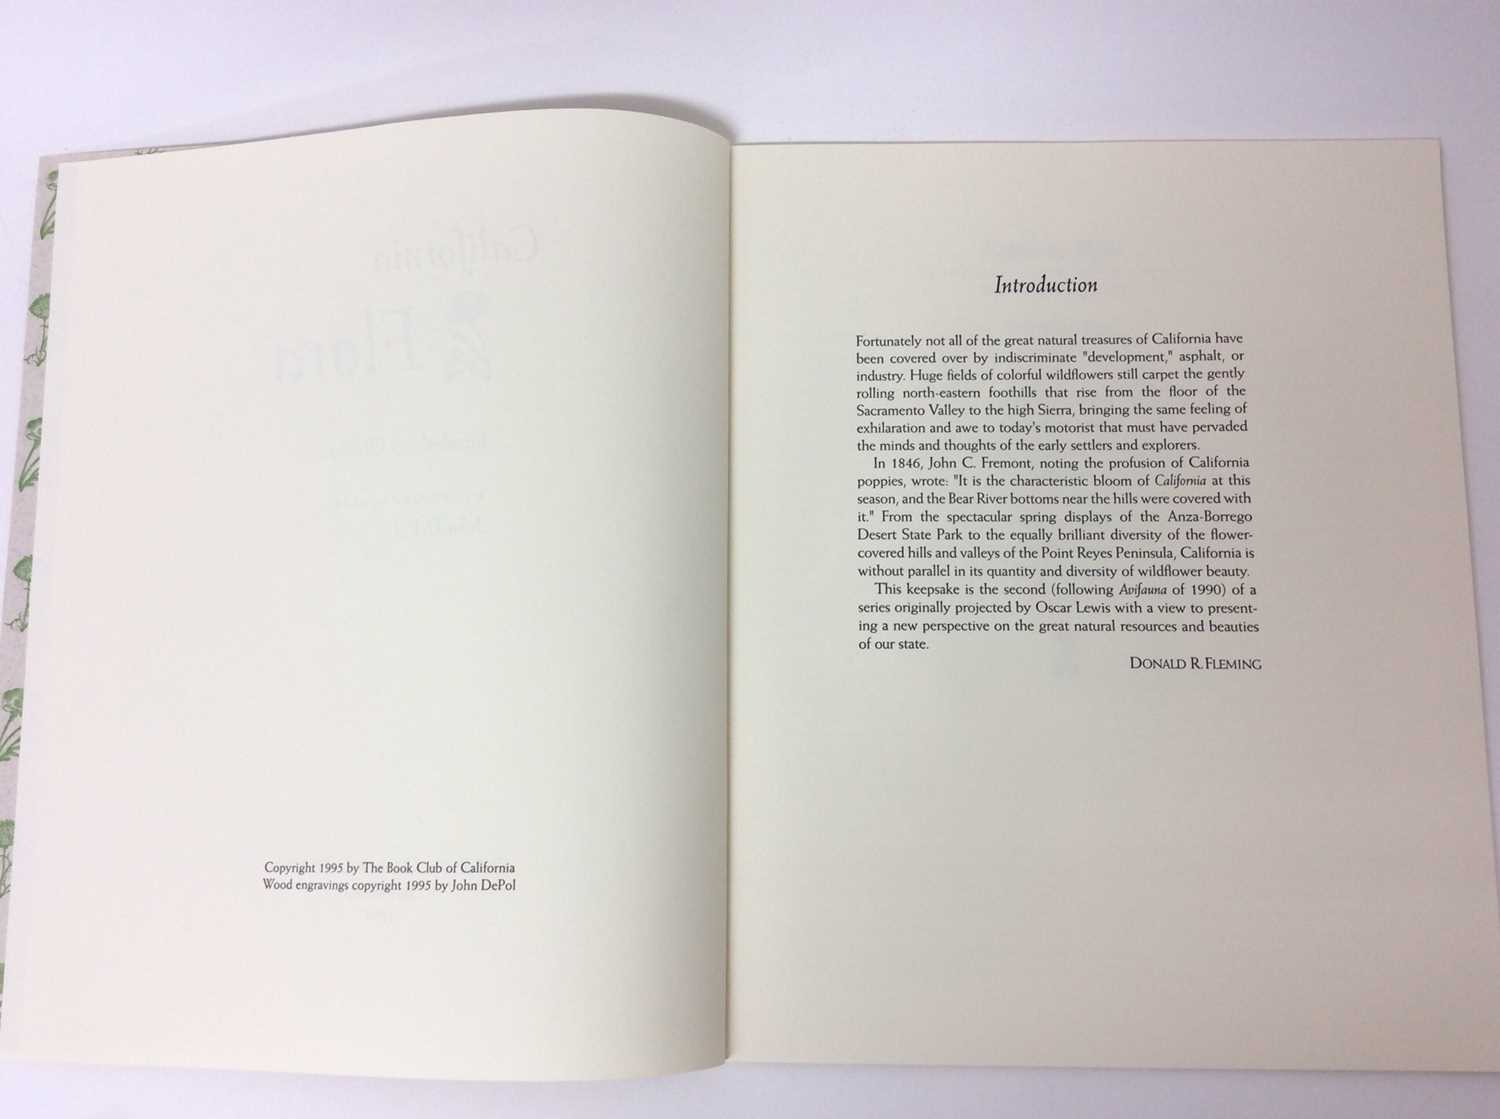 Elizabeth McClintoch - California Flora, The Book Vlub of California, 1995, two others - Image 4 of 16